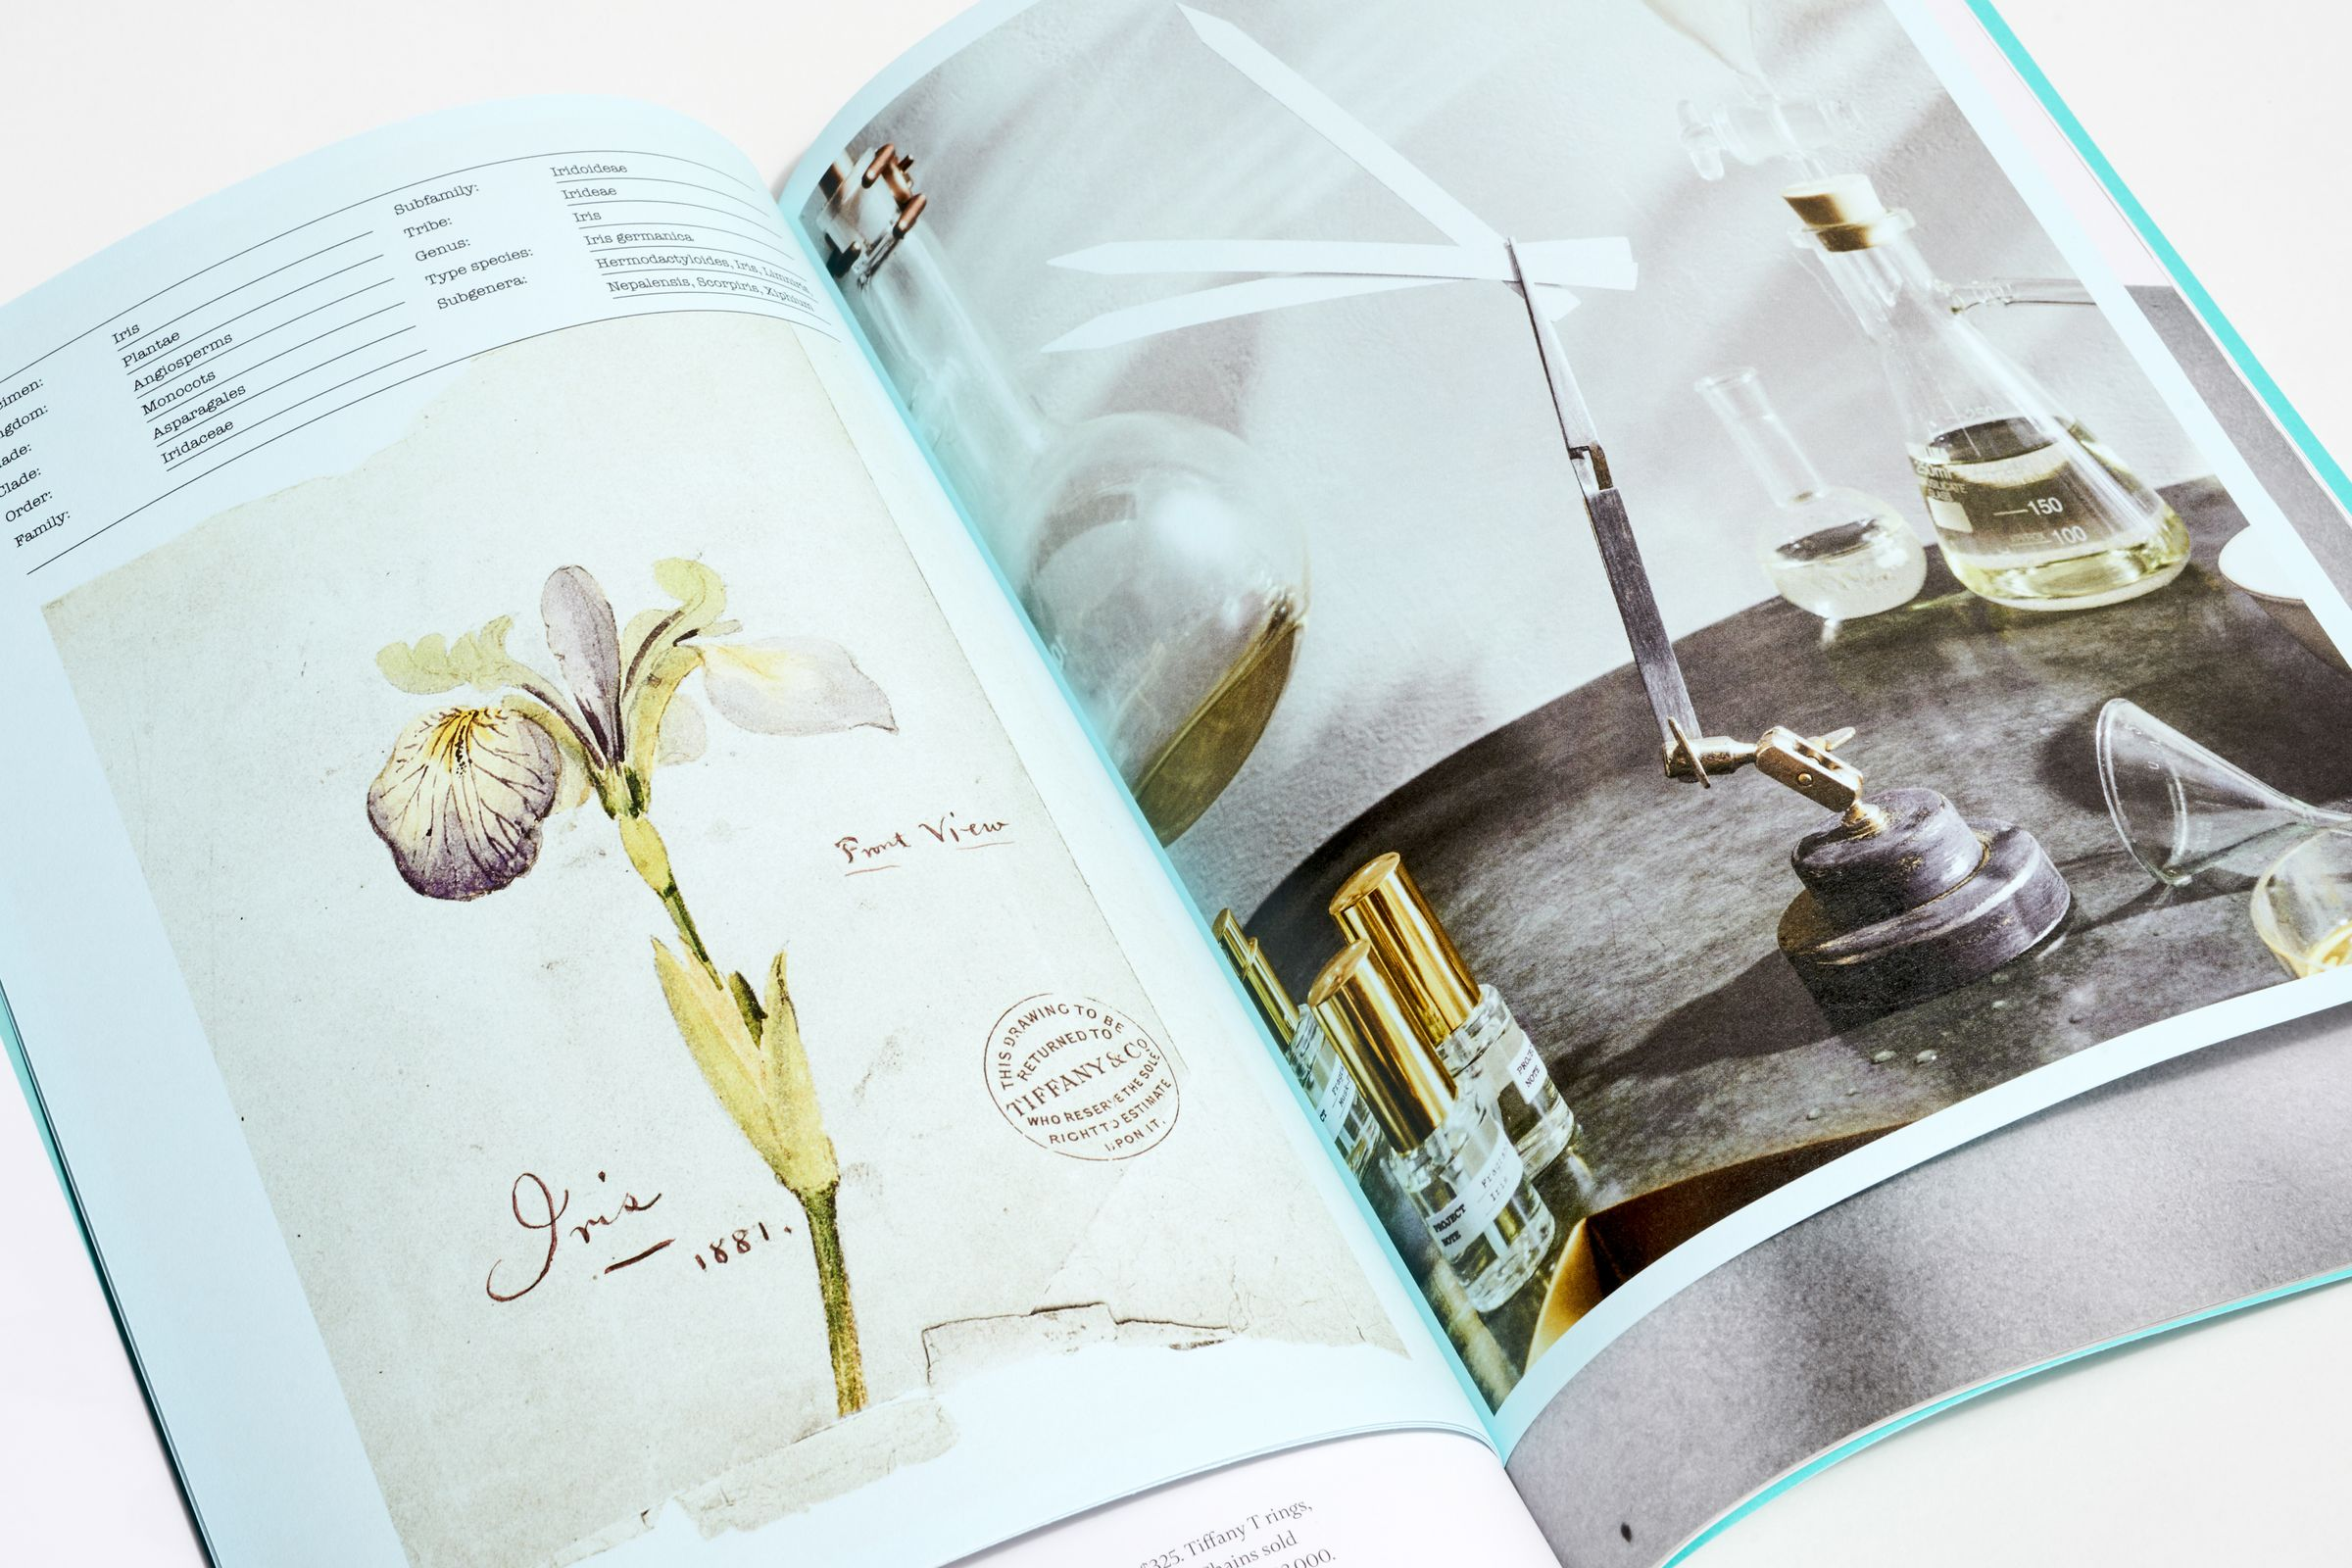 This is Tiffany magazine Issue 6 fragrance story insert layout